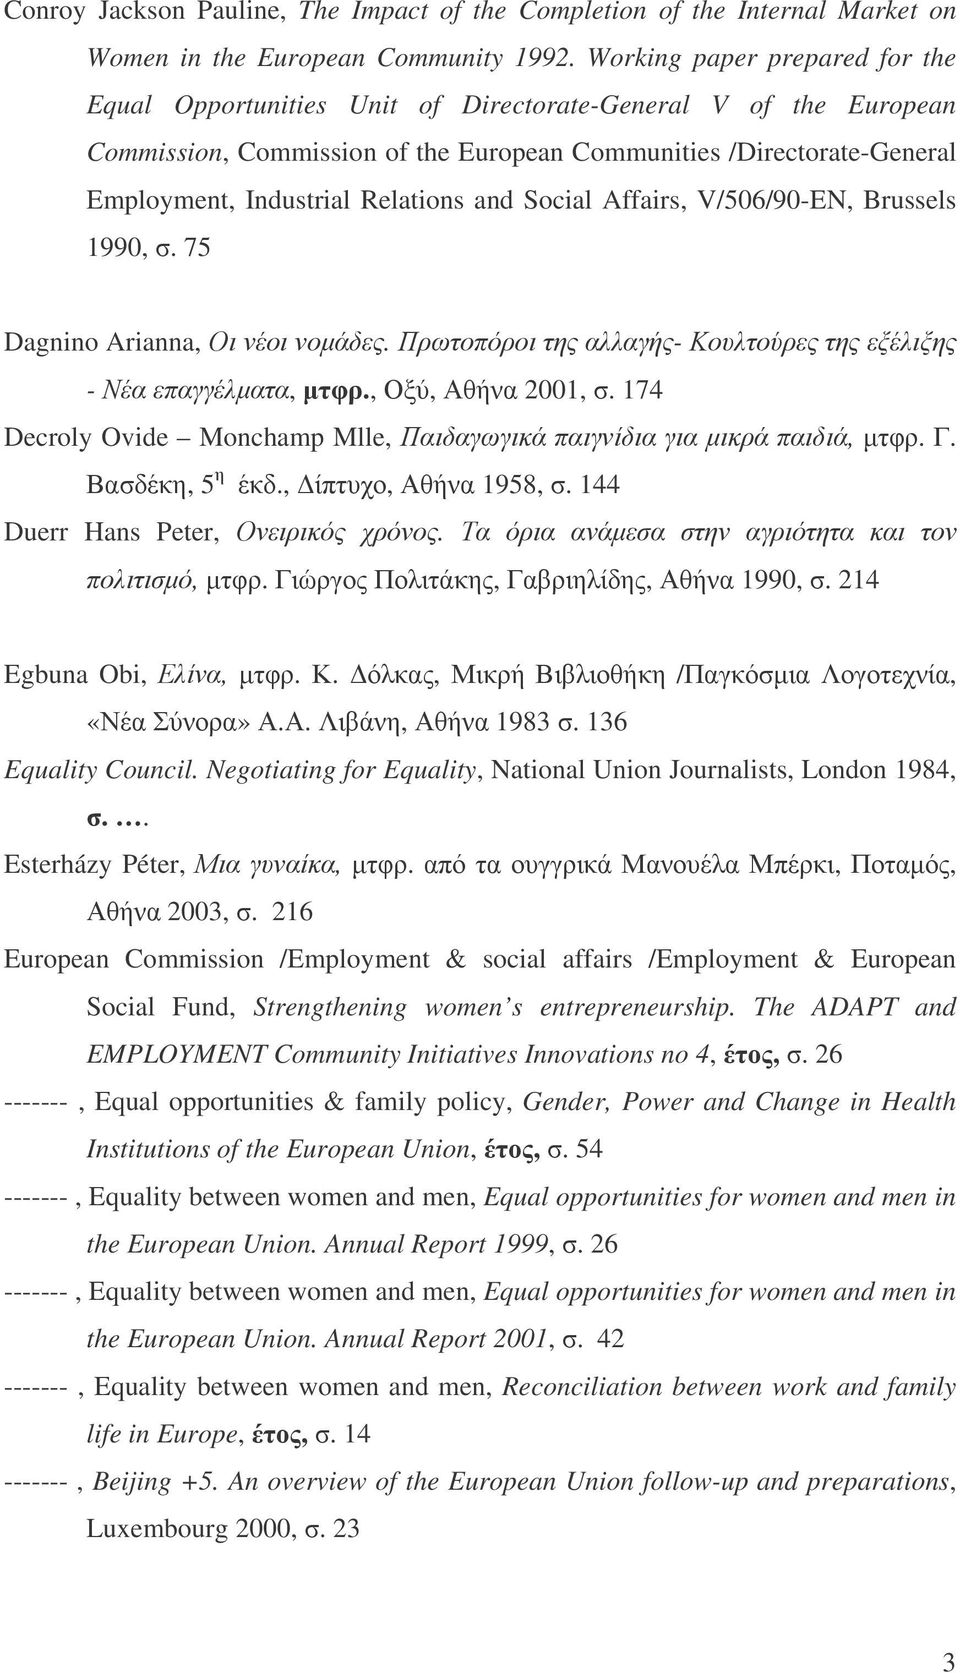 "Relations and Social Affairs, V/506/90-EN, Brussels 1990,!. 75 Dagnino Arianna,!. - - -.,., '1, 2001,!. 174 Decroly Ovide Monchamp Mlle,,. 3.!, 5., ""$*, 1958,!. 144 Duerr Hans Peter,!. &,."